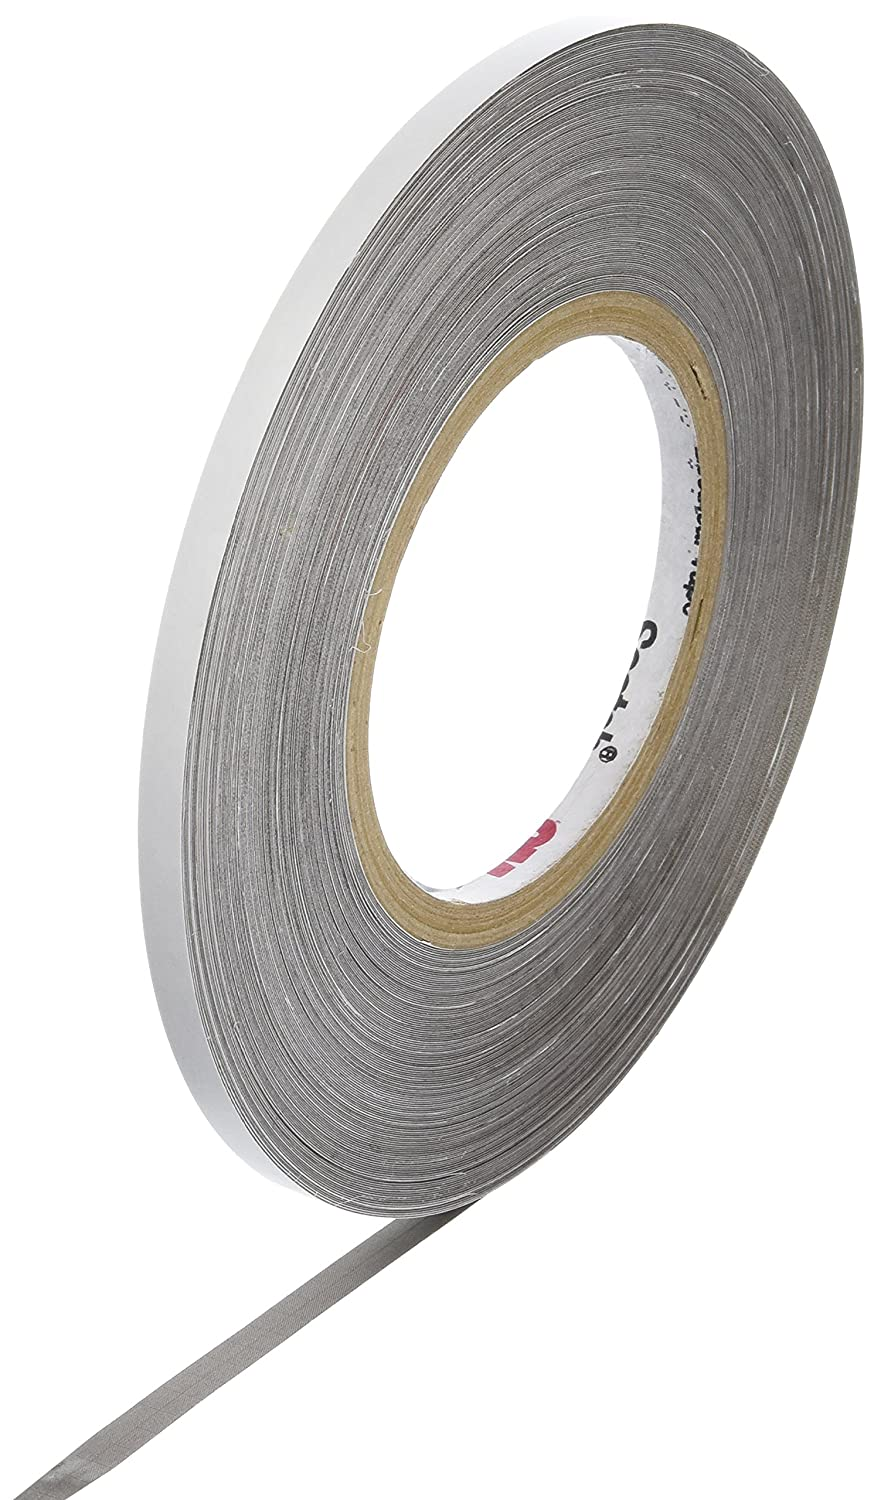 0.25 Width Roll 3M CN3190 0.25 x 54.5yd Gray Nickel on Copper-Plated Polyester Fabric Tape 54.5 yd Length